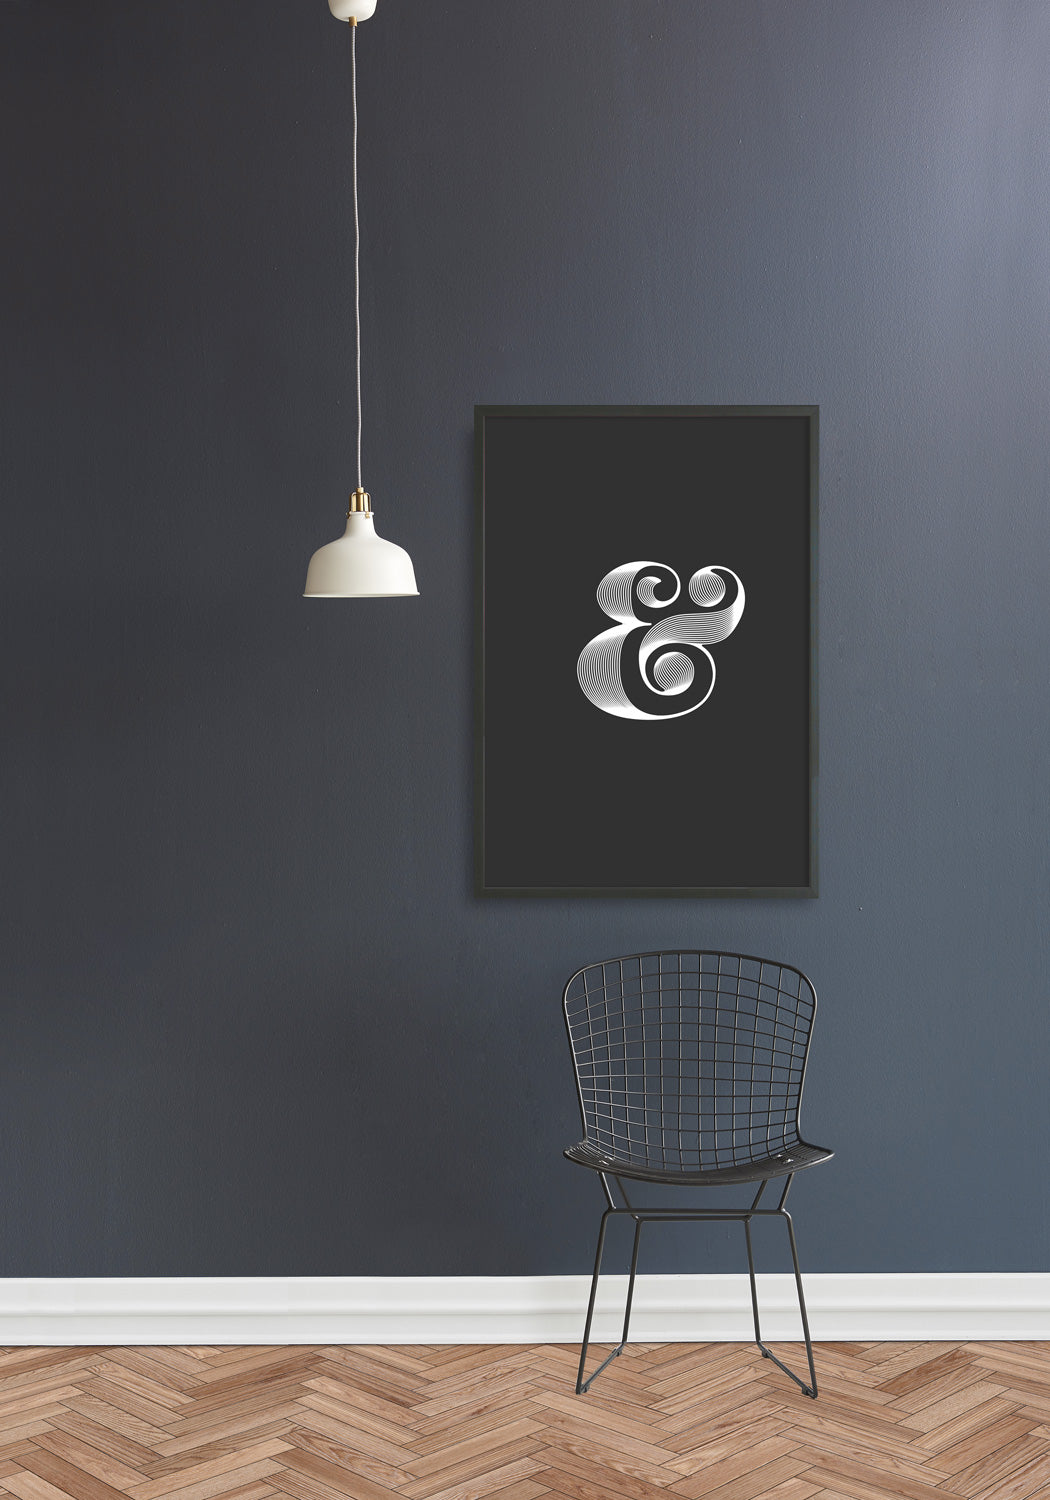 AMPERSAND no.2